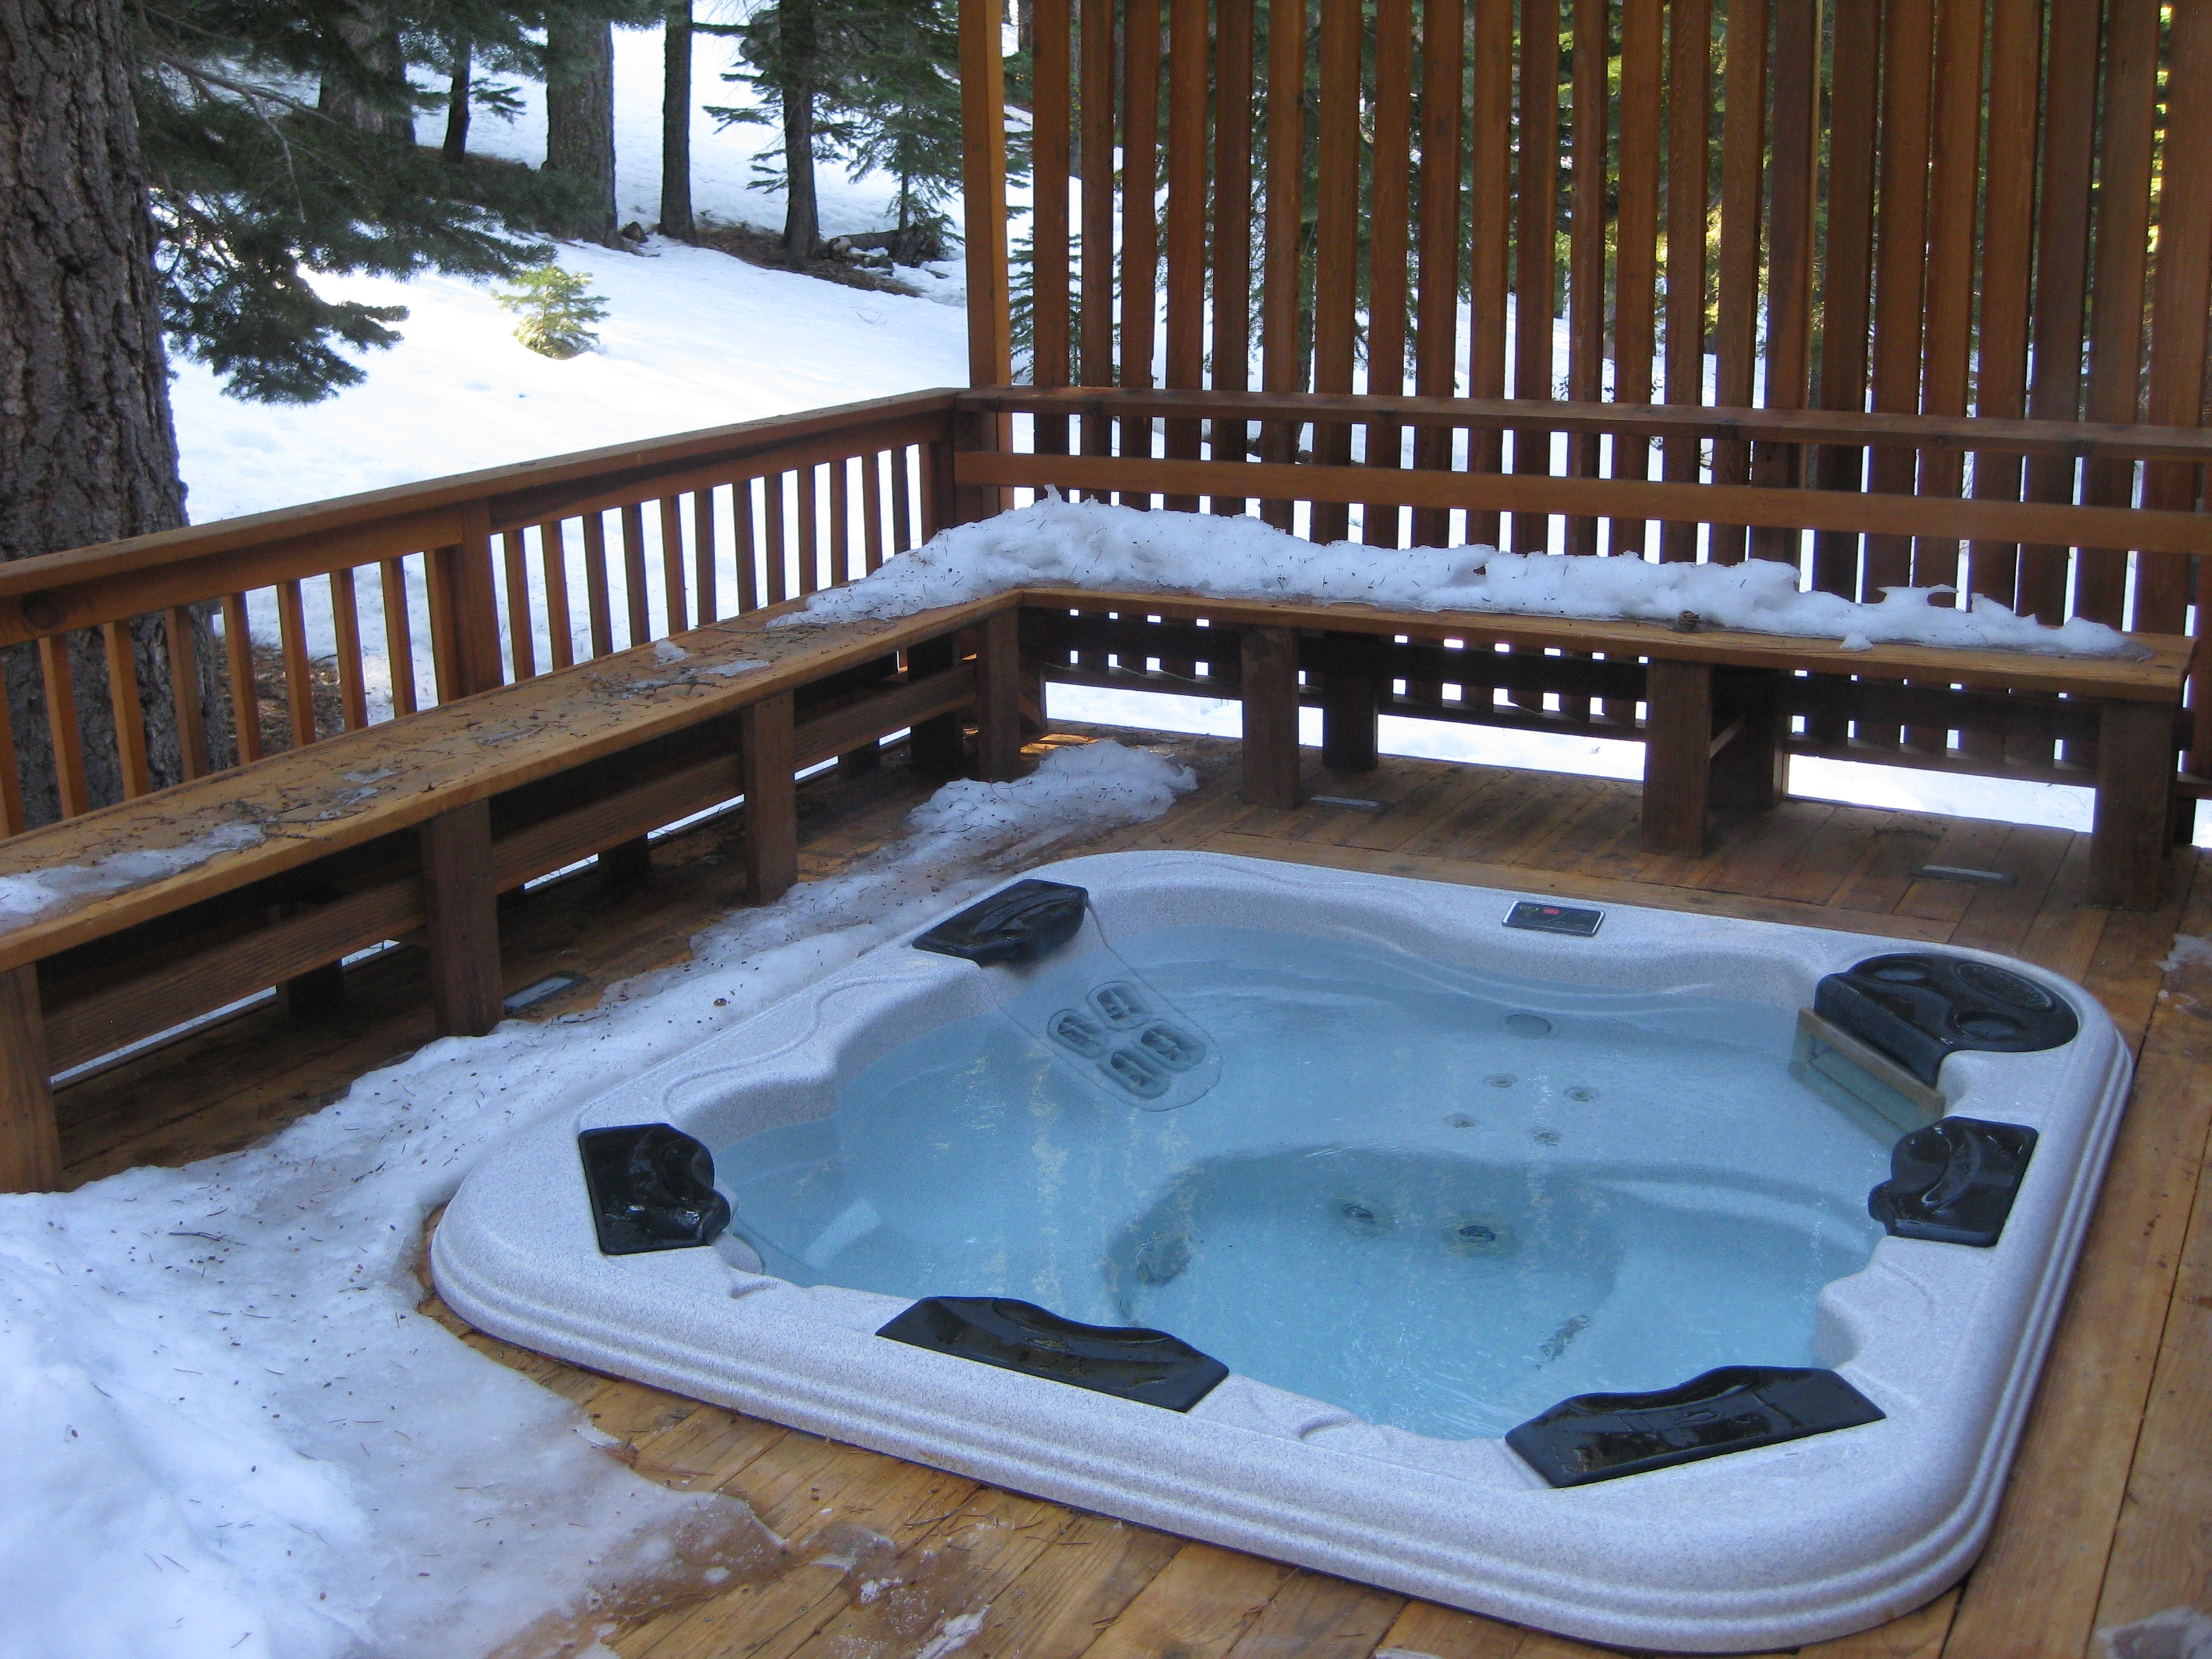 hotels for tubs we out of company decked big order removed canadian part ja internati sur be future large can before london ensure in decking or blonde the deliver servicing balanced hot hotel design spa tub gain access repair clipgoo to your